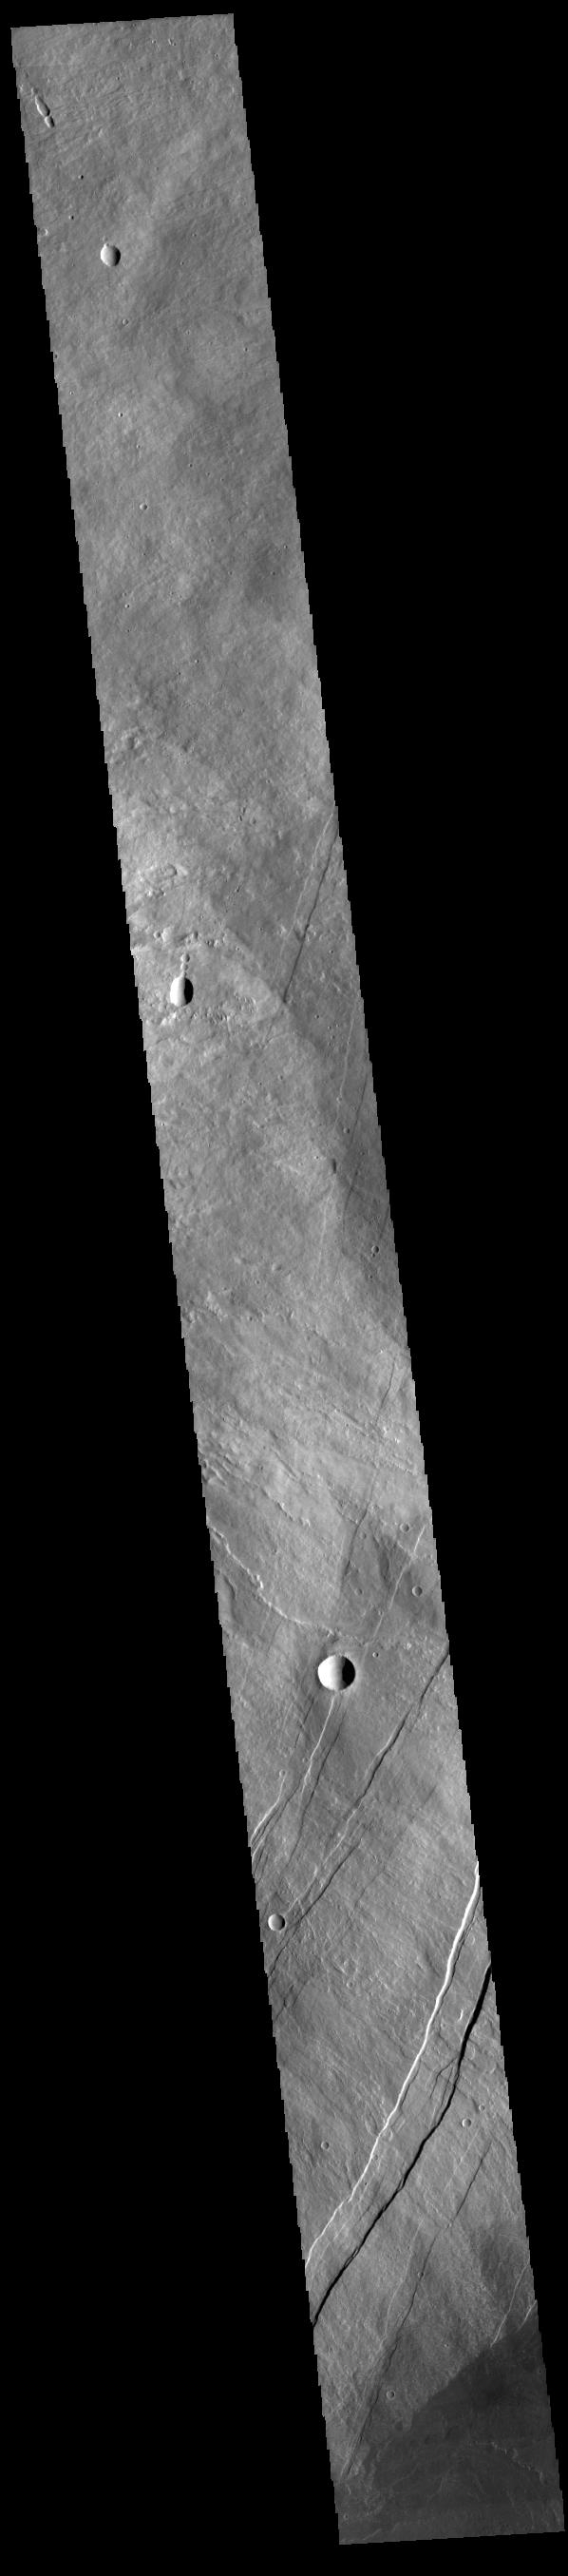 This image from NASAs Mars Odyssey shows part of the eastern flank of Arsia Mons, including part of Oti Fossae.